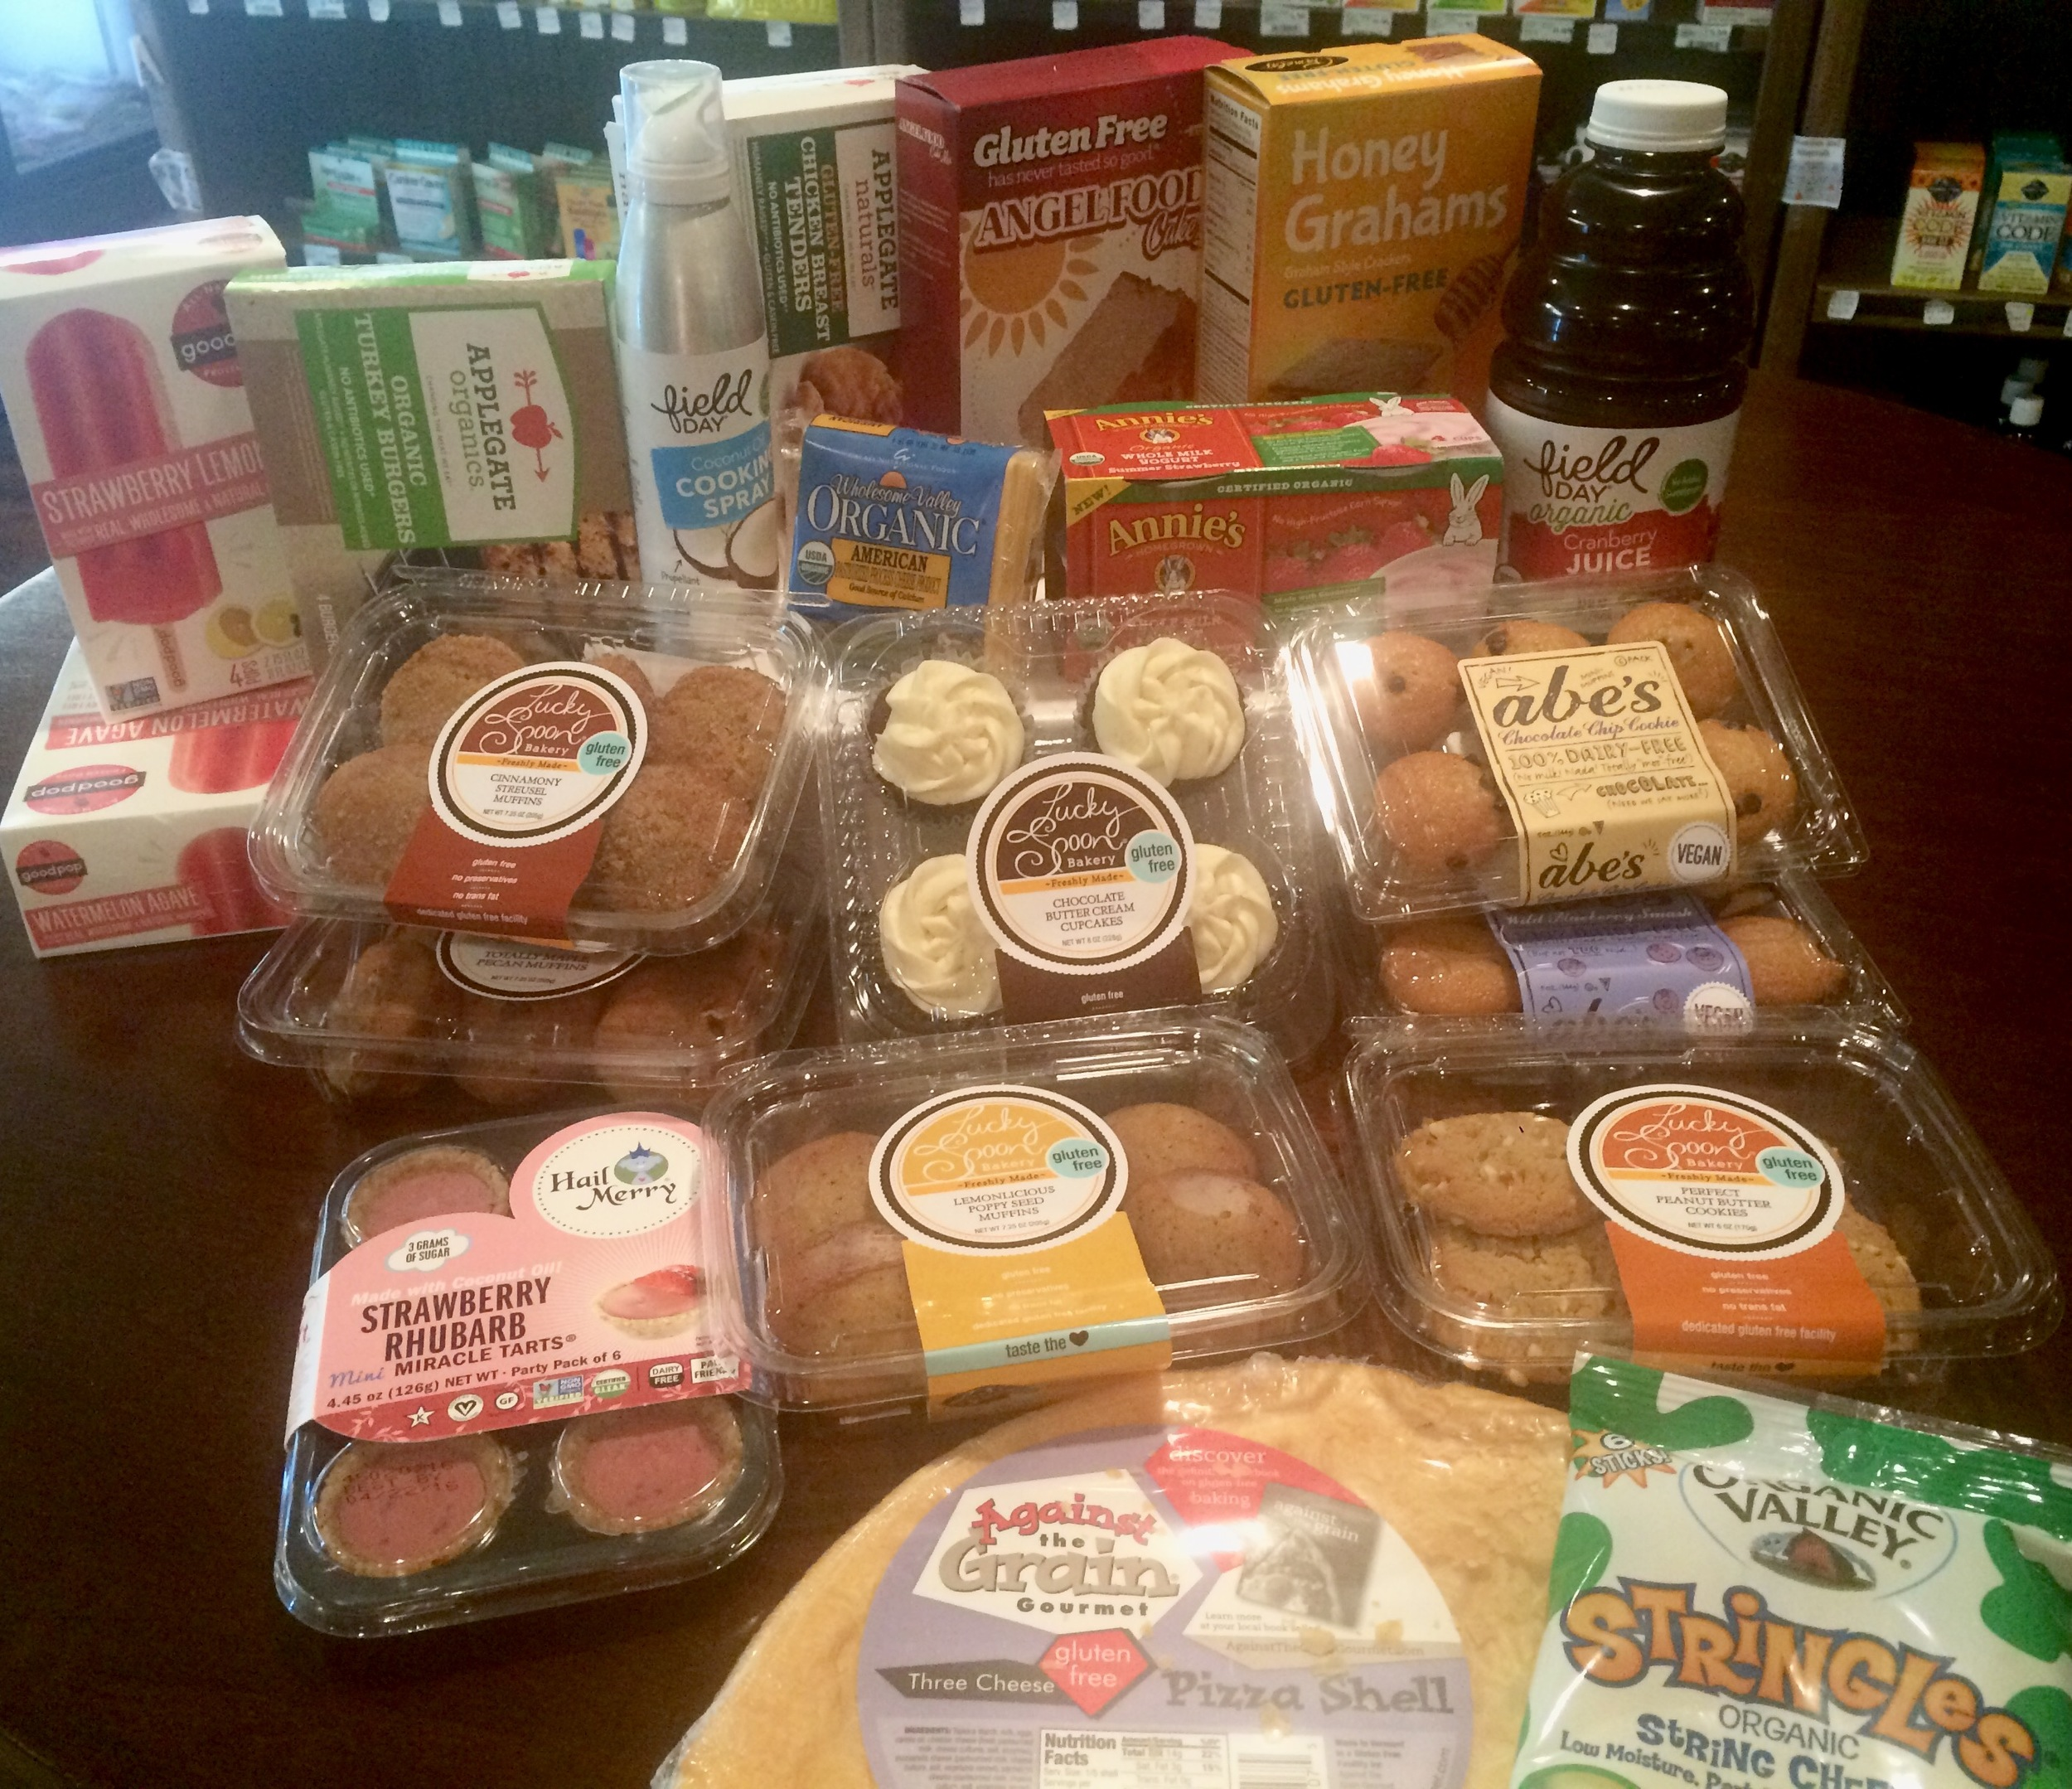 Fresh Palate ordered a plethora of new products in this week! Abe's vegan muffins, Lucky Spoon Bakery gluten free cookies and muffins, Against the Grain gluten free pizza crust, Goodpop popsicles, Applegate turkey burgers and gluten free chicken tenders, and others!!